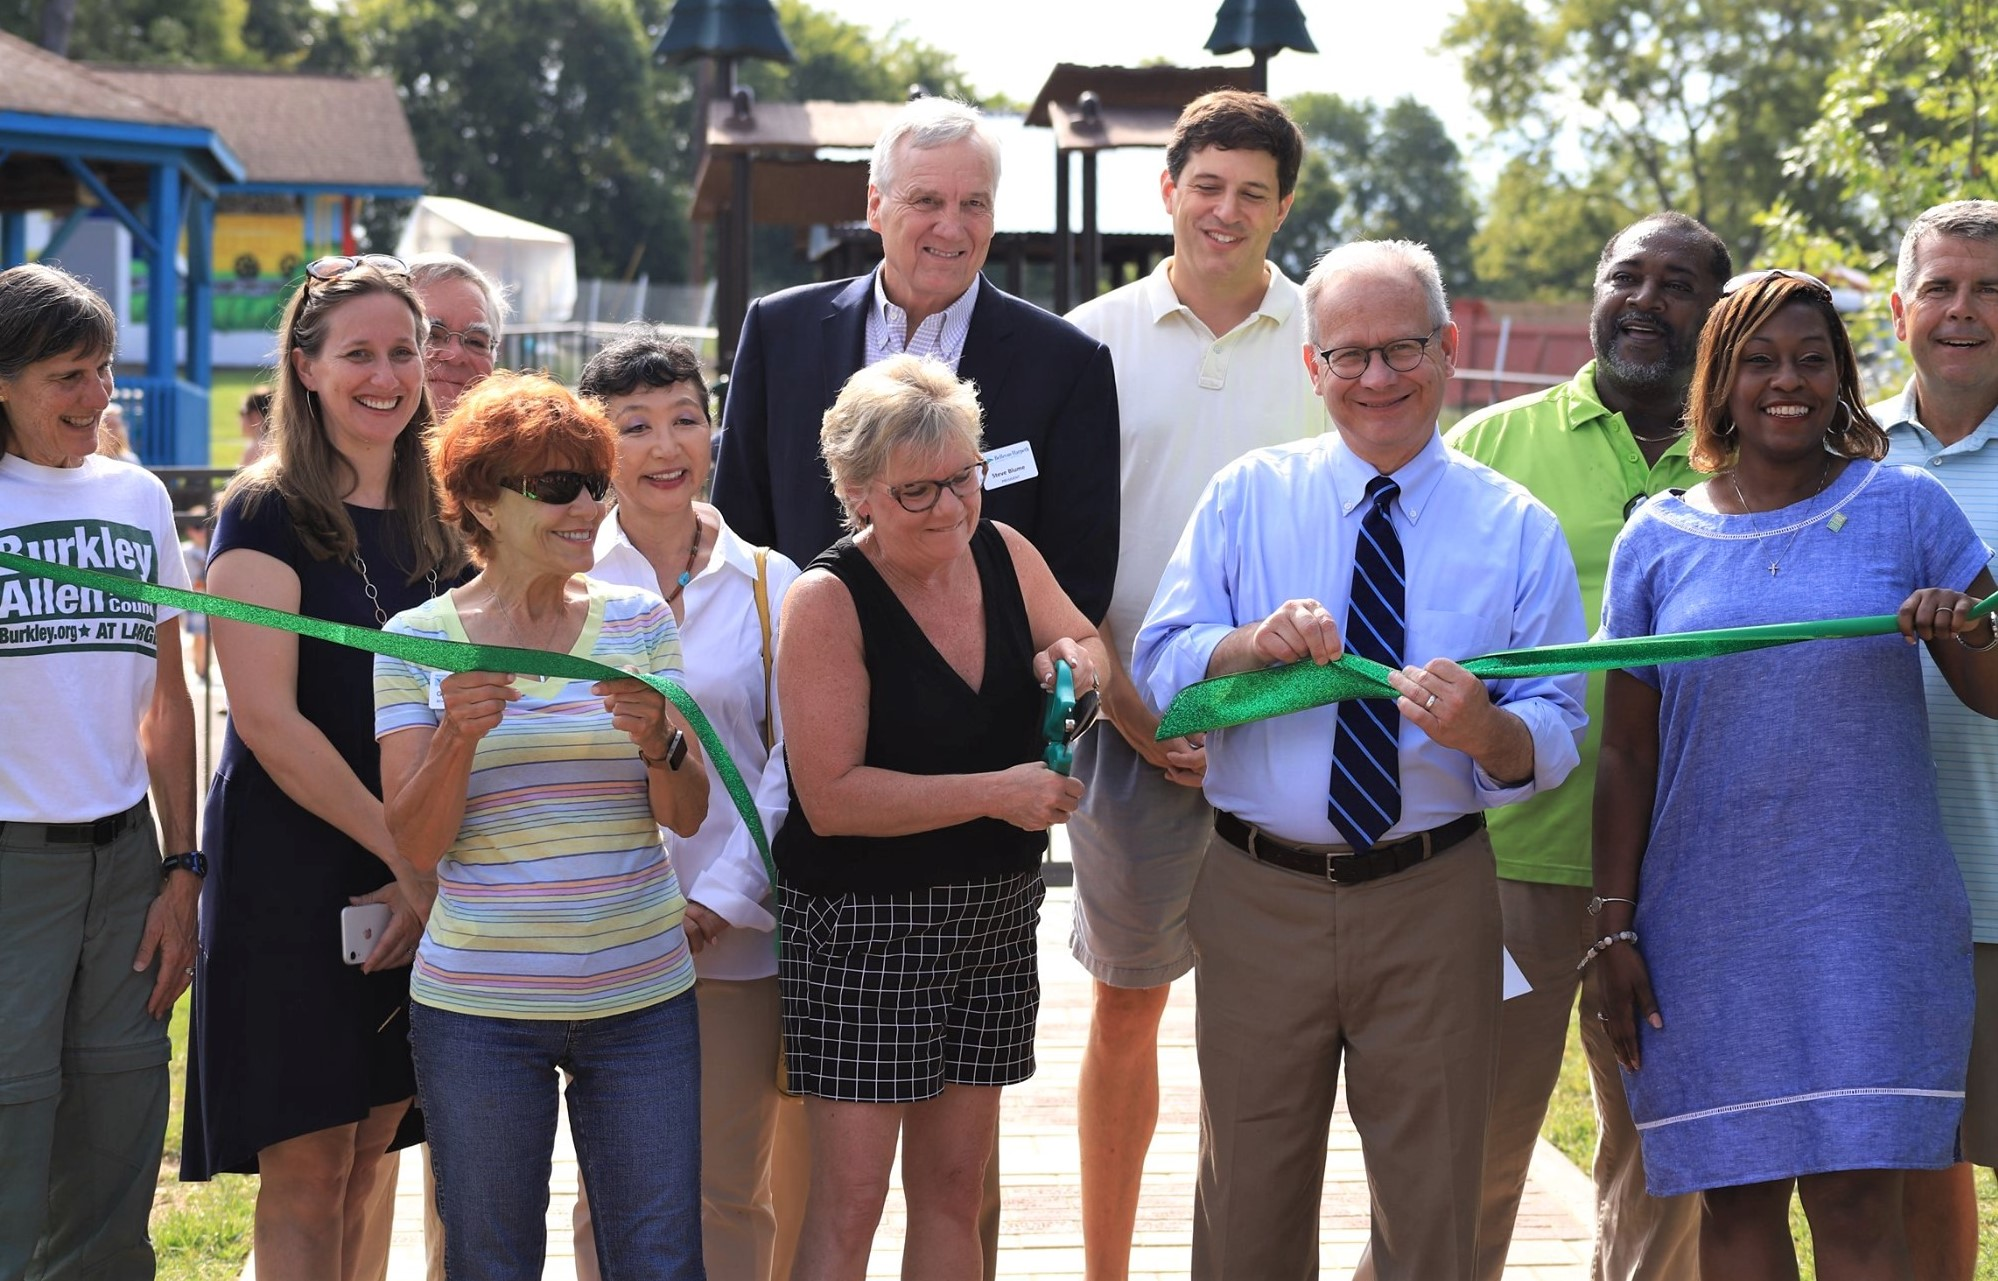 Mayor, community leaders, volunteers on hand for park dedication